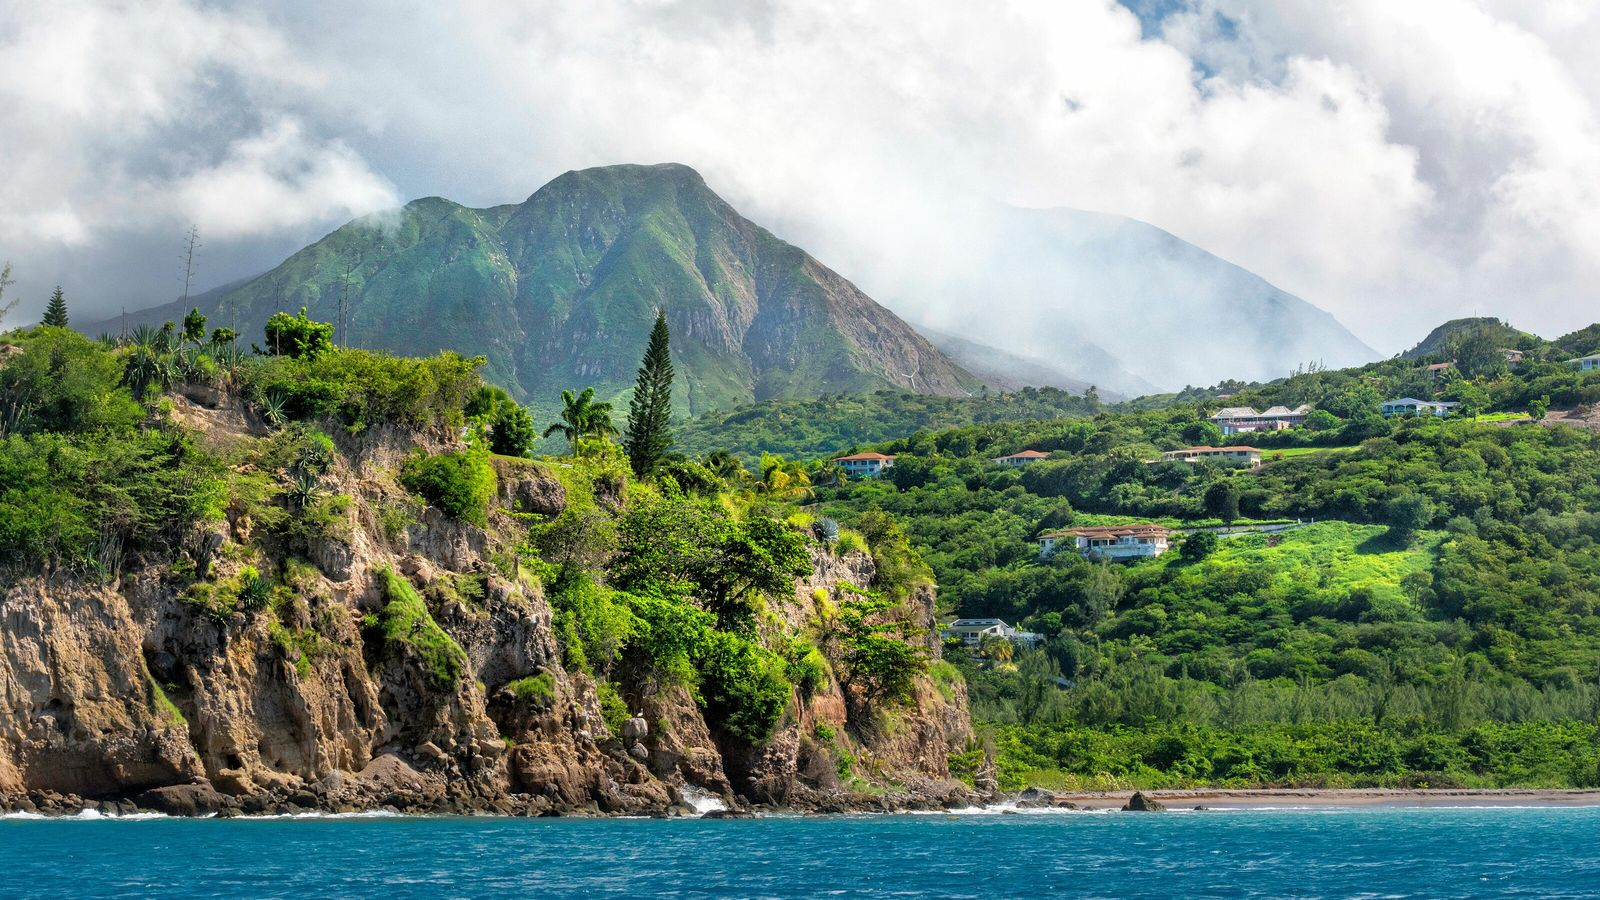 The Caribbean island is home to the smoking Soufrière Hills volcano.